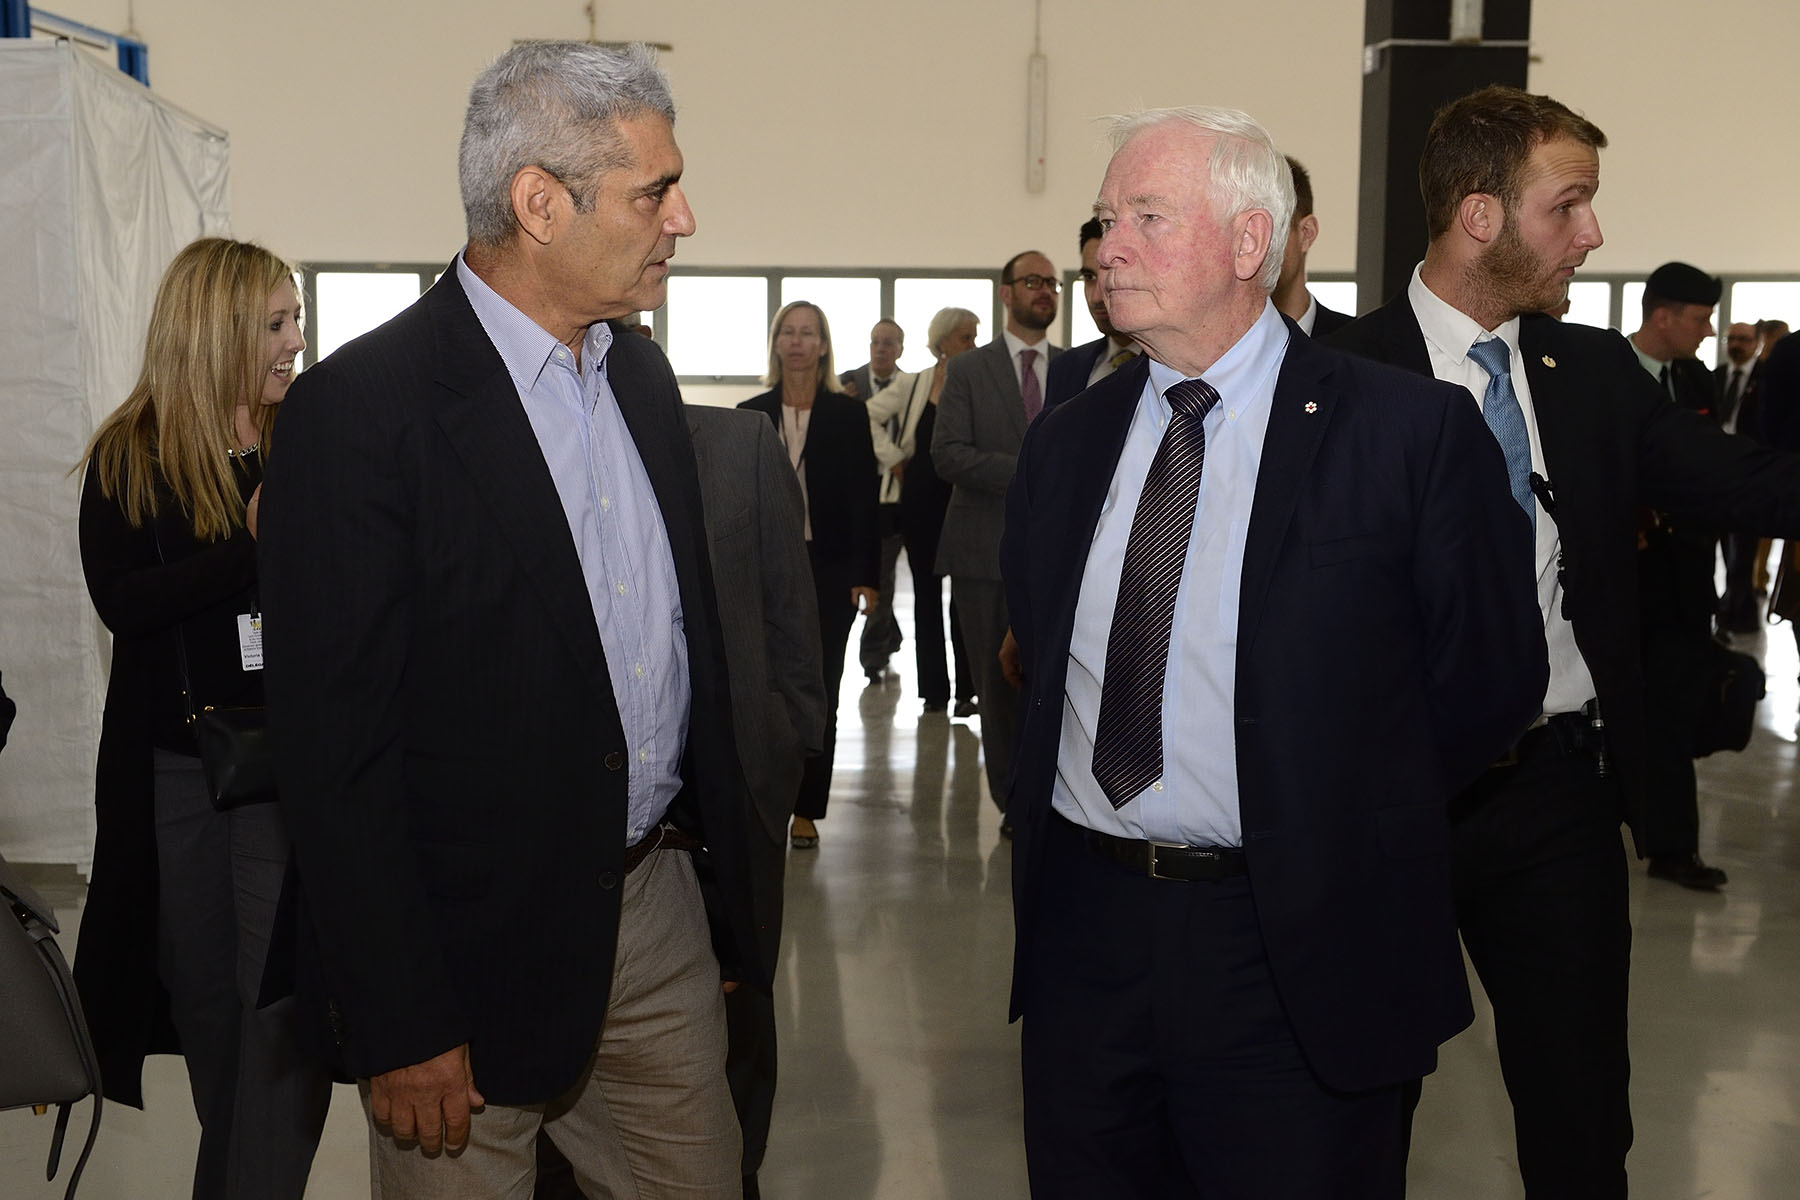 On November 3, 2016, the Governor General and members of the Canadian delegation visited Phinergy to learn more about the company's aluminium-air batteries, and its successful collaboration with the Canadian and international subsidiaries of Alcoa. His Excellency had the opportunity to exchange with Mr. Aviv Tzidon, CEO of Phinergy.